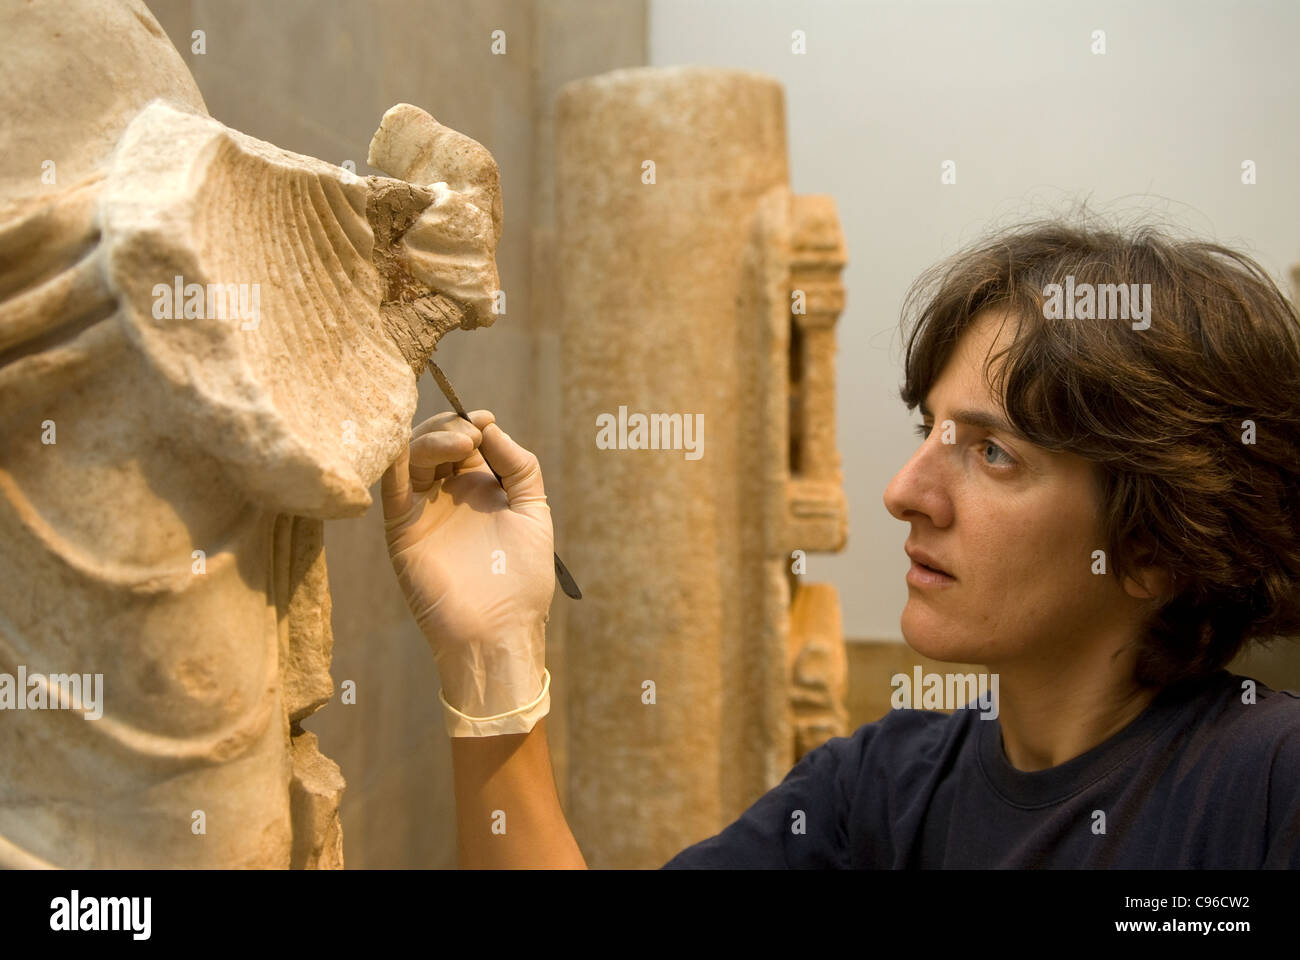 Archaeologist carrying out restoration work on an artefact at Beirut's National Museum, Beirut, Lebanon. - Stock Image